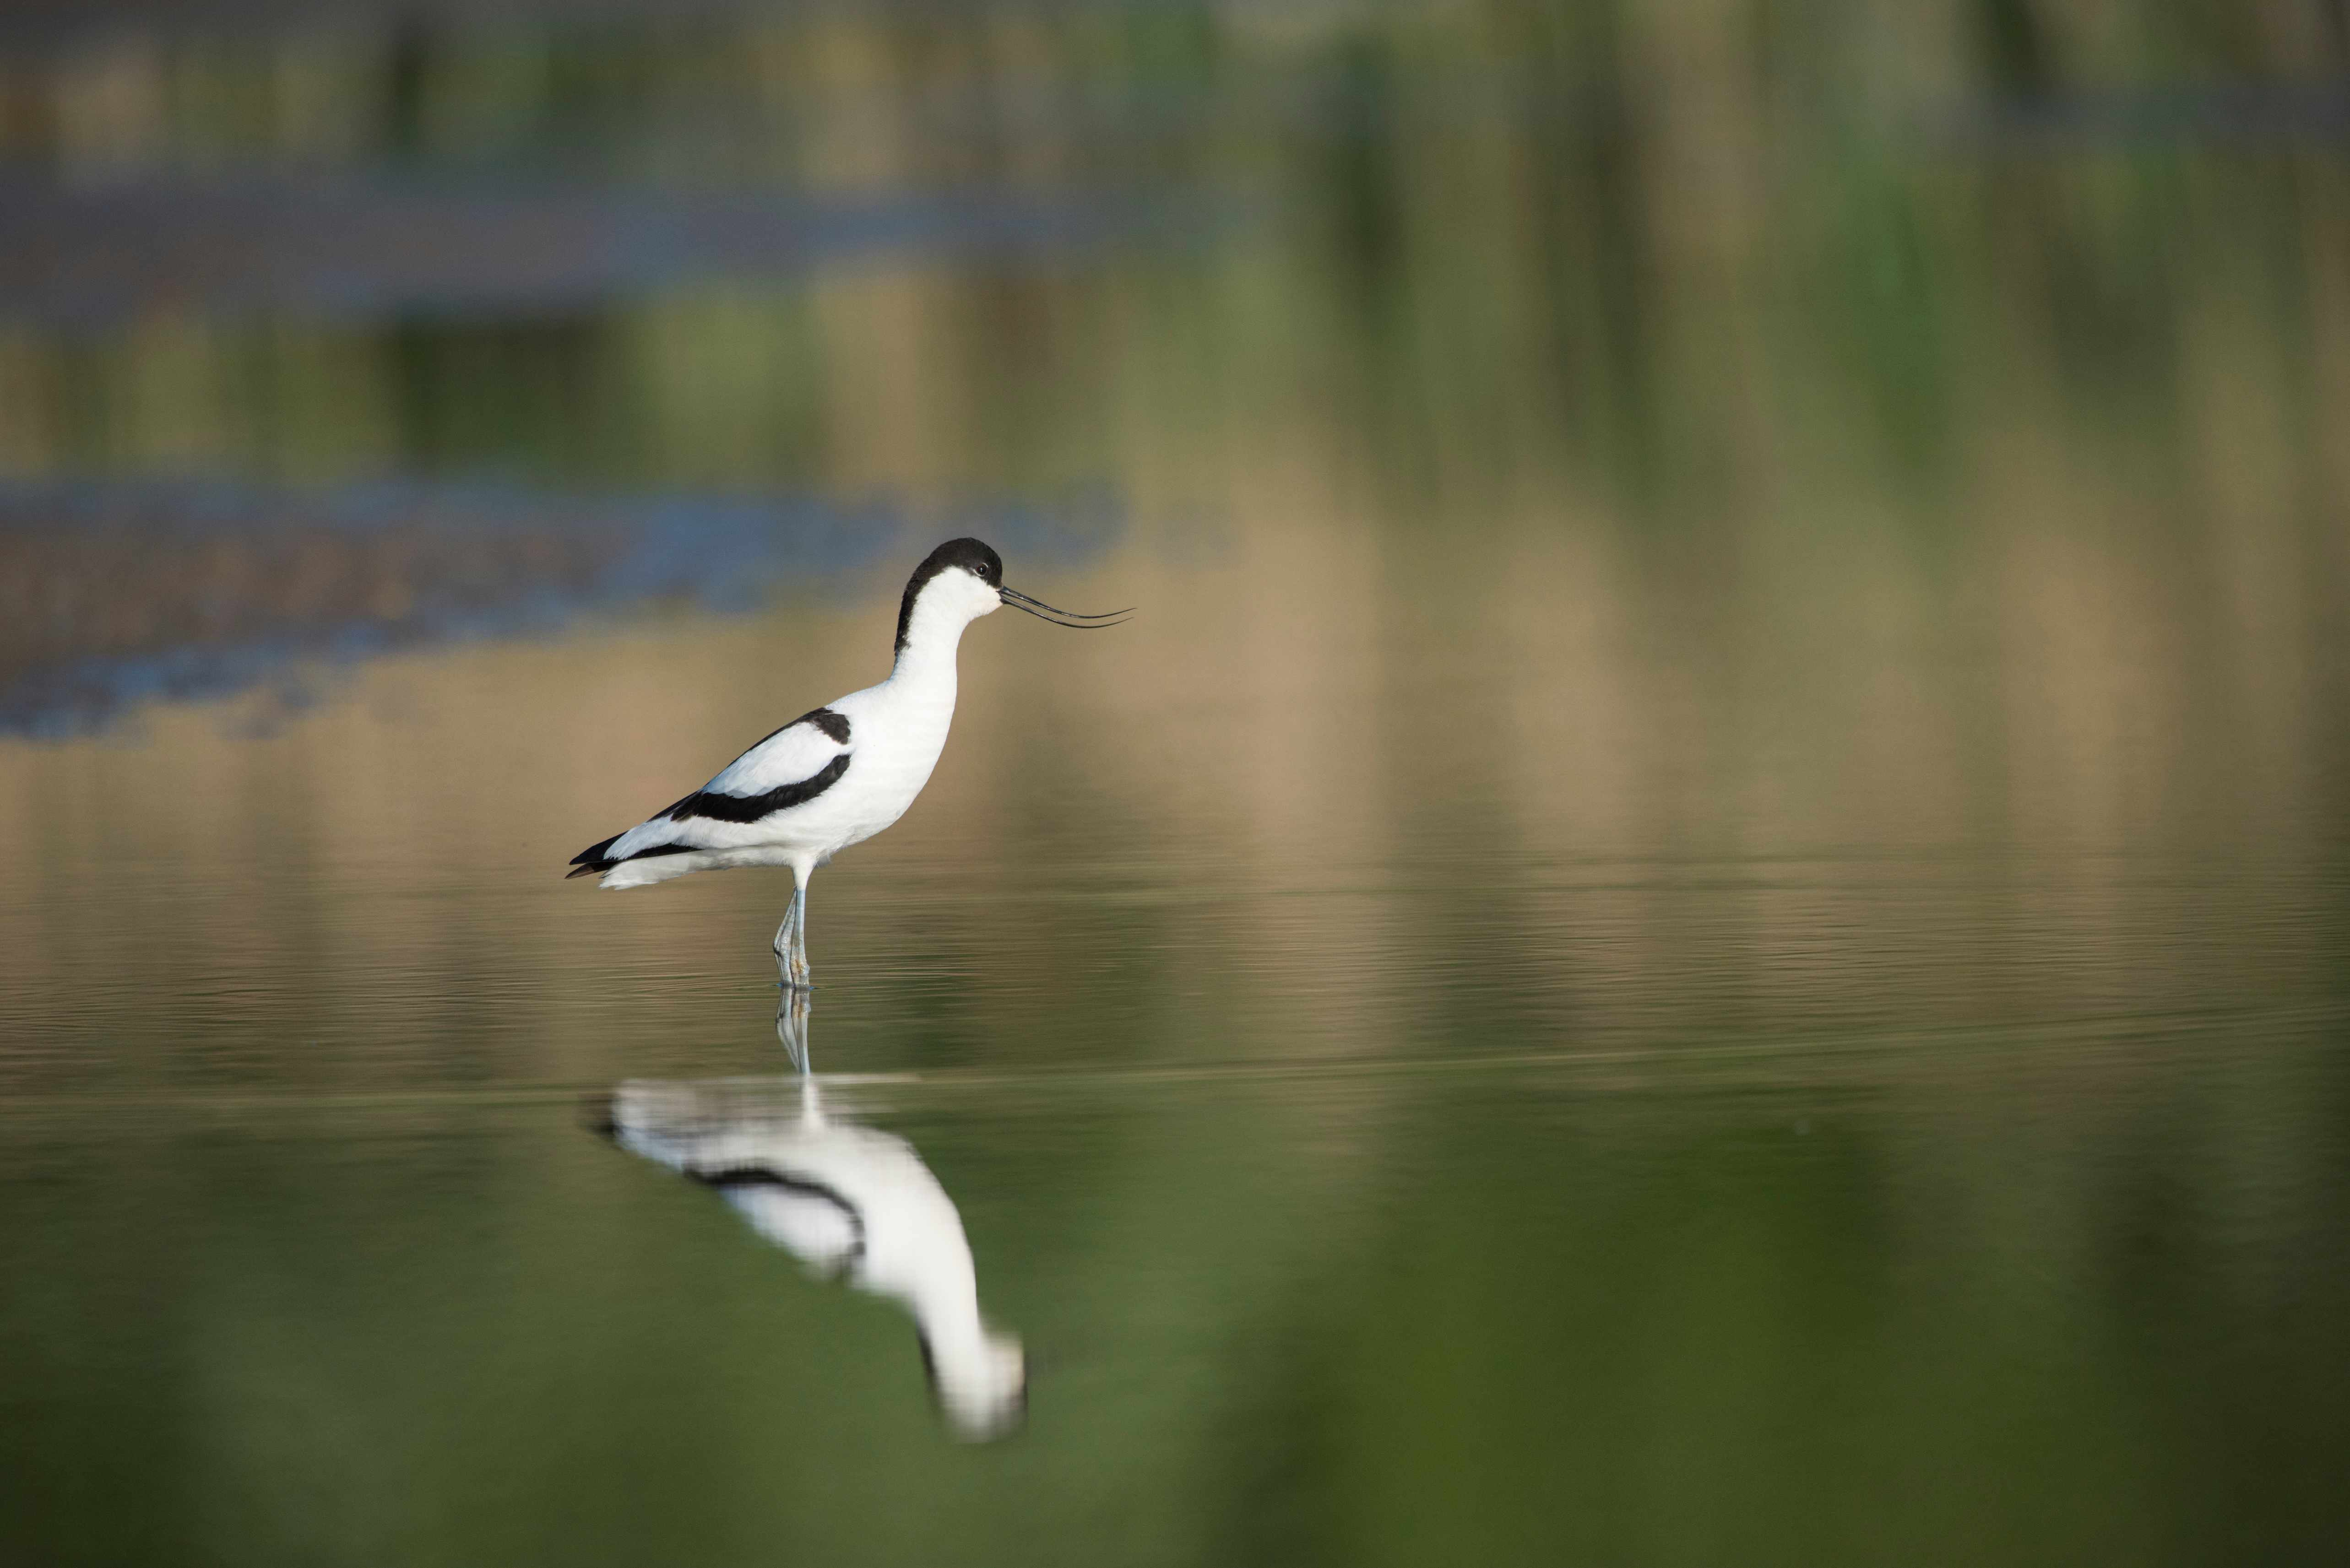 Avocet Recurvirostra avosetta Adult calling whilst standing in lake with concentric rings on surface, Norfolk, UK,  Europe